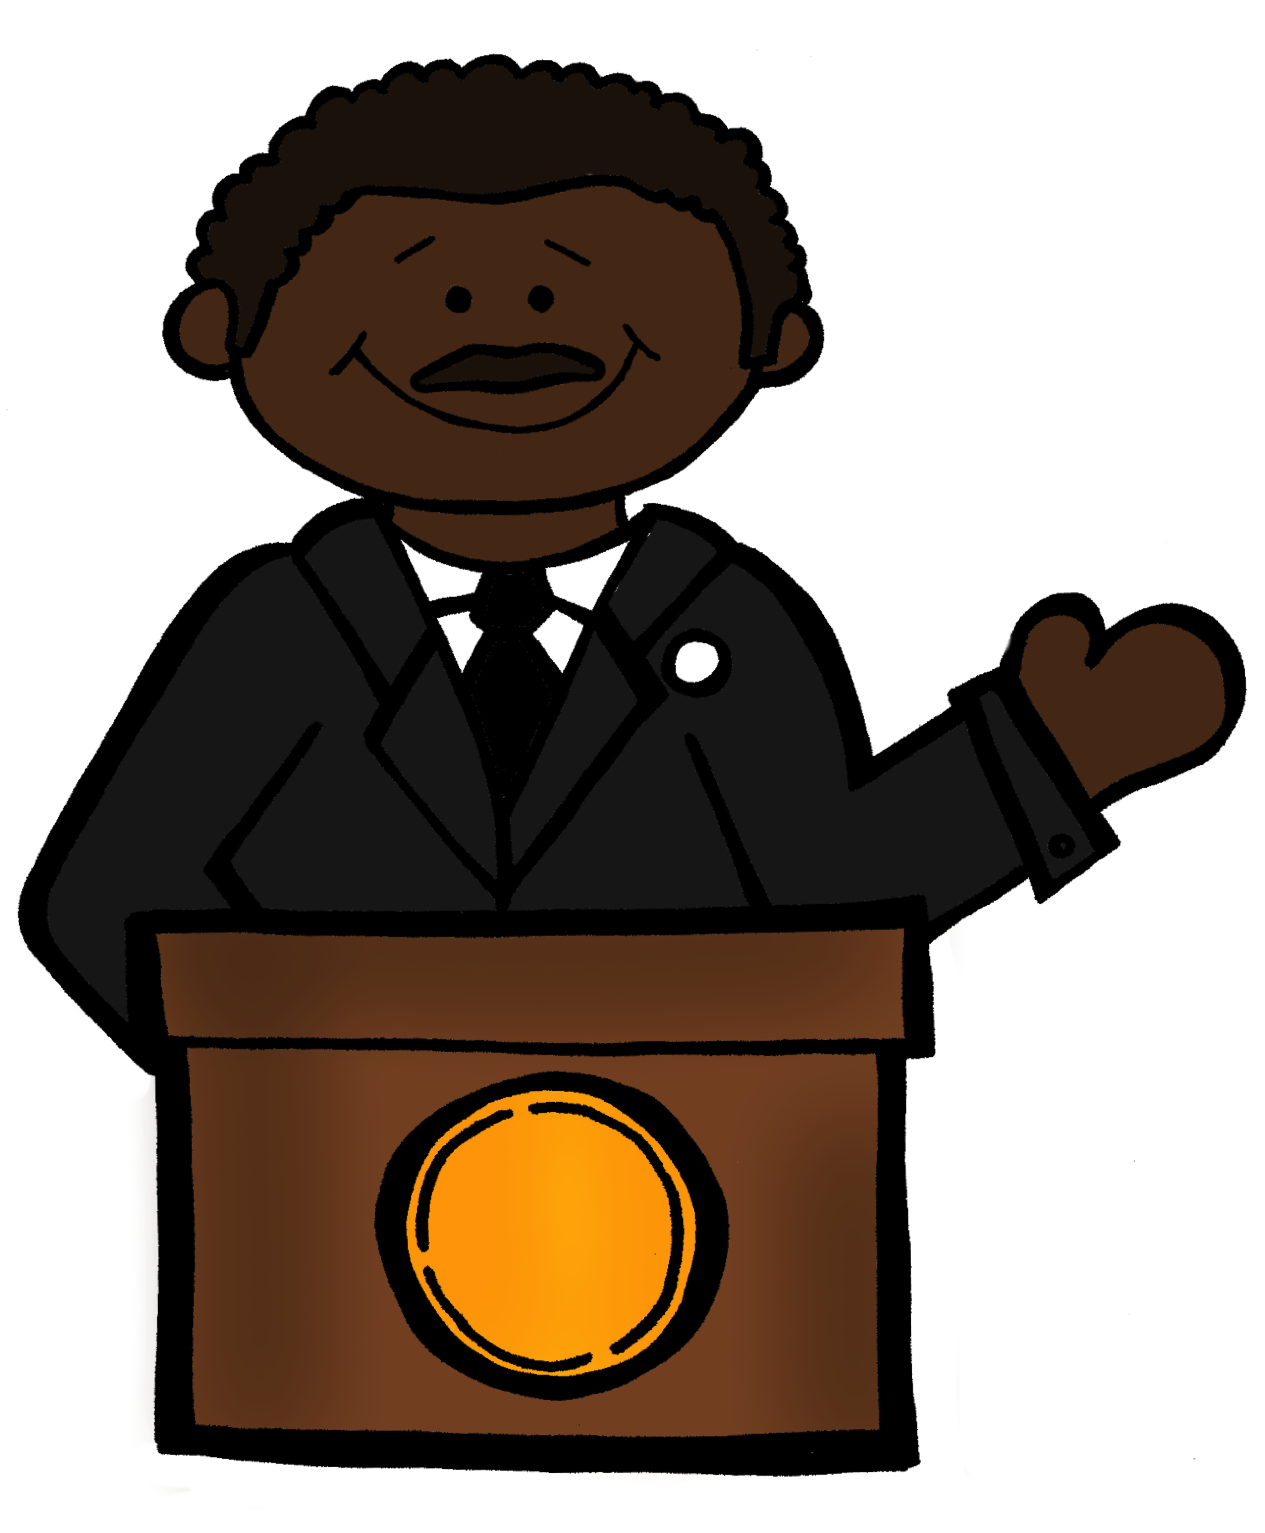 Mlk Clipart - Clipart library